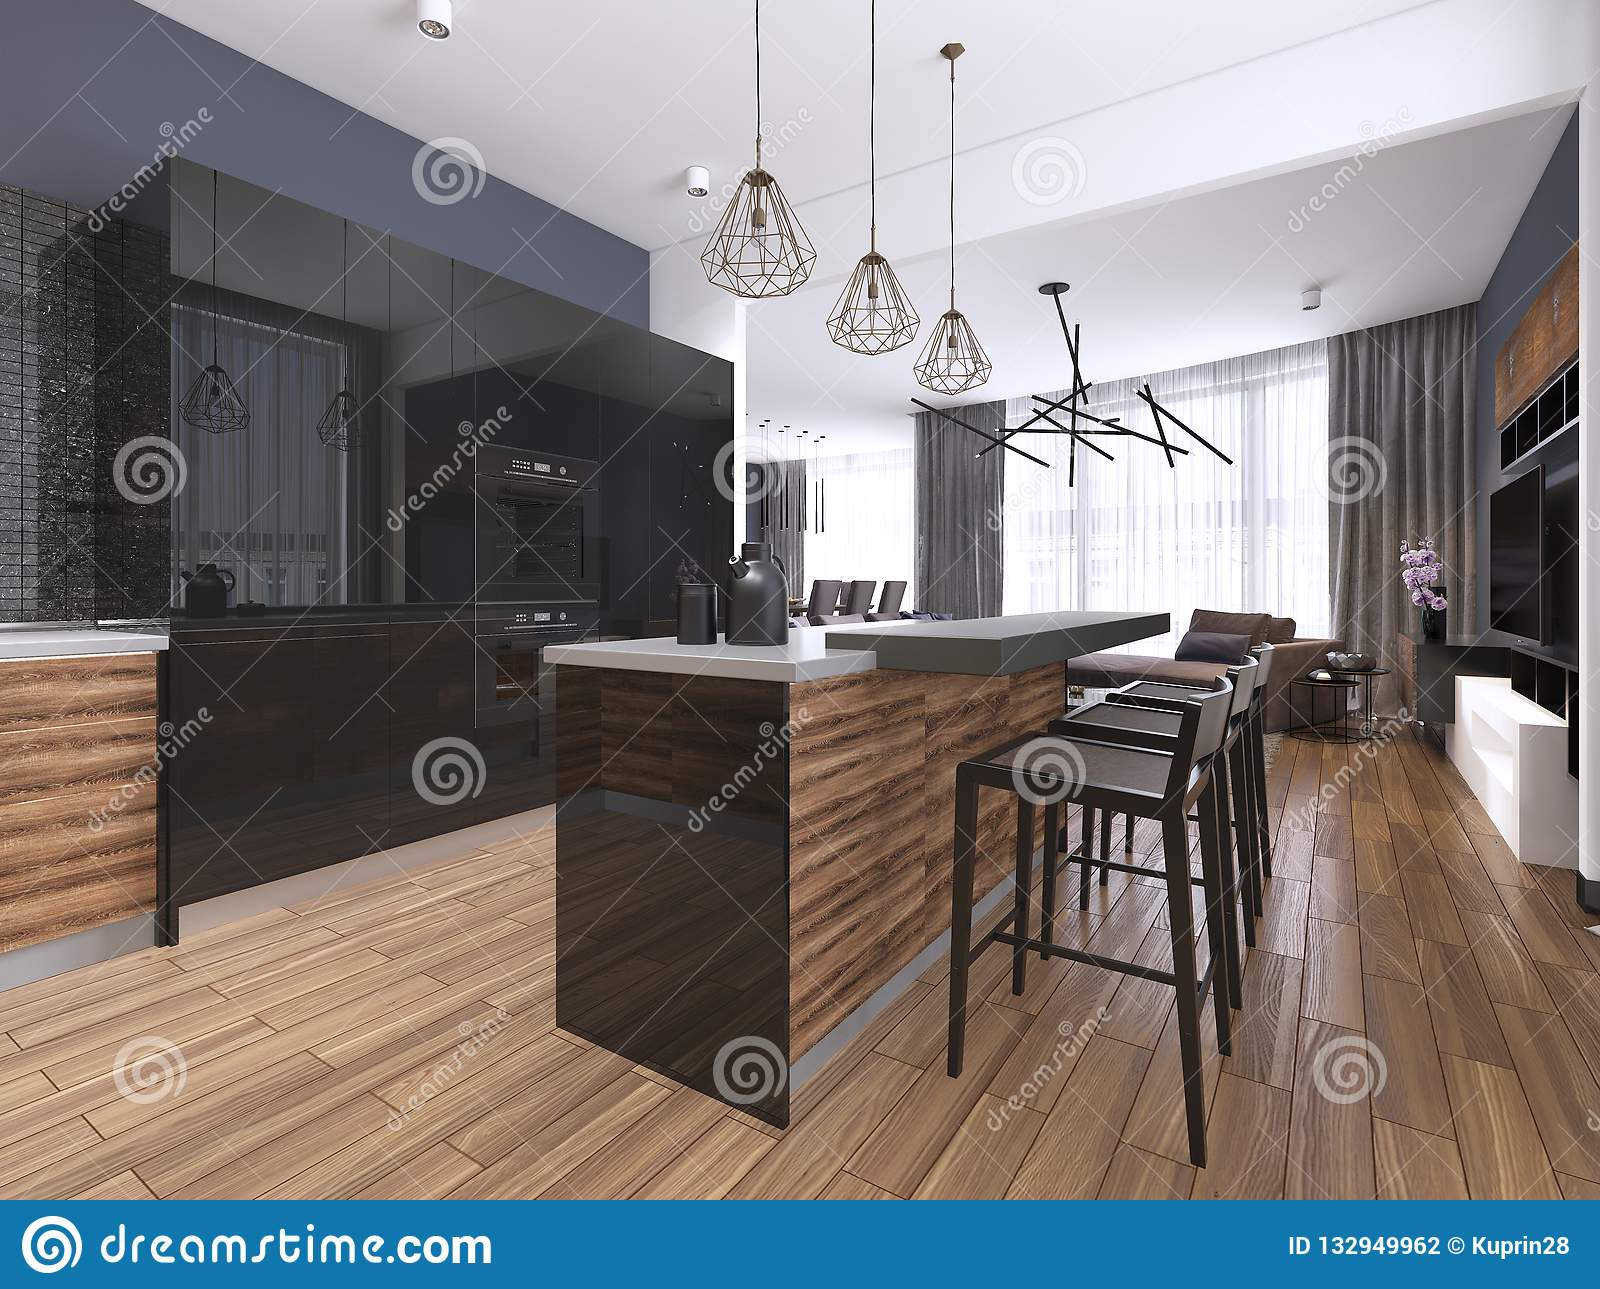 Modern Kitchen With Wood And Gloss Black Kitchen Cabinets Kitchen Island With Bar Stools Stone Countertops Built In Appliances Stock Illustration Illustration Of Elegant Bright 132949962